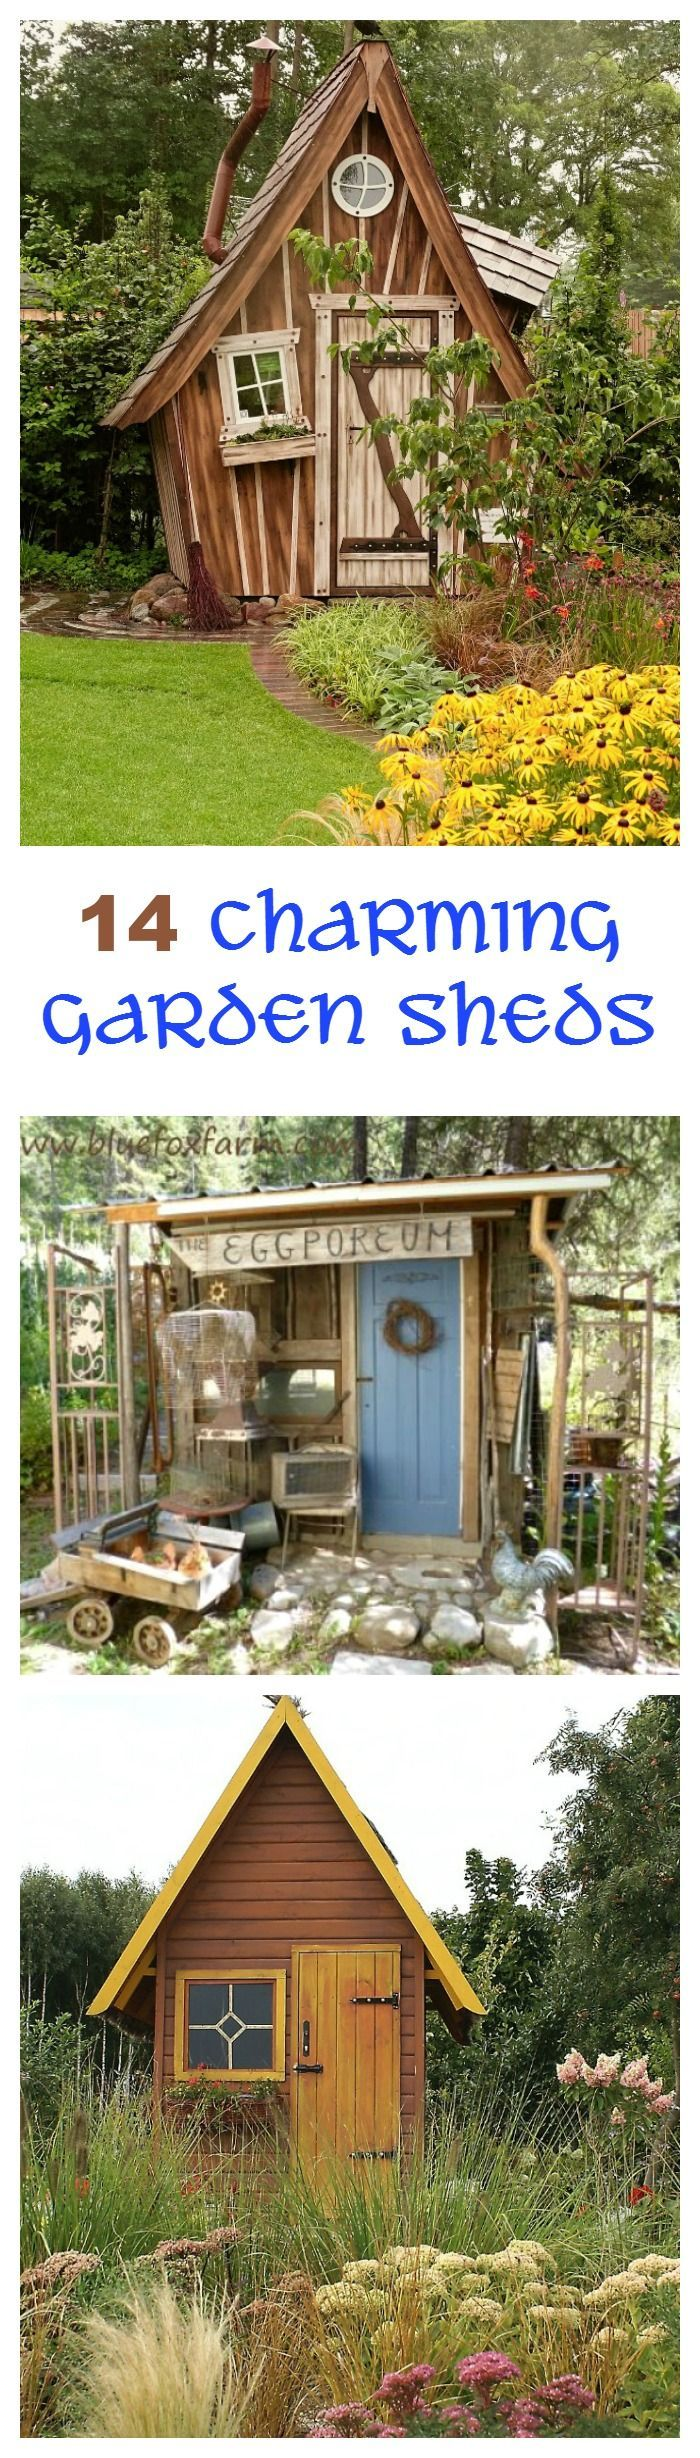 These 14 charming garden sheds will give you lots of inspiration for a place to keep your garden tools and gadgets.